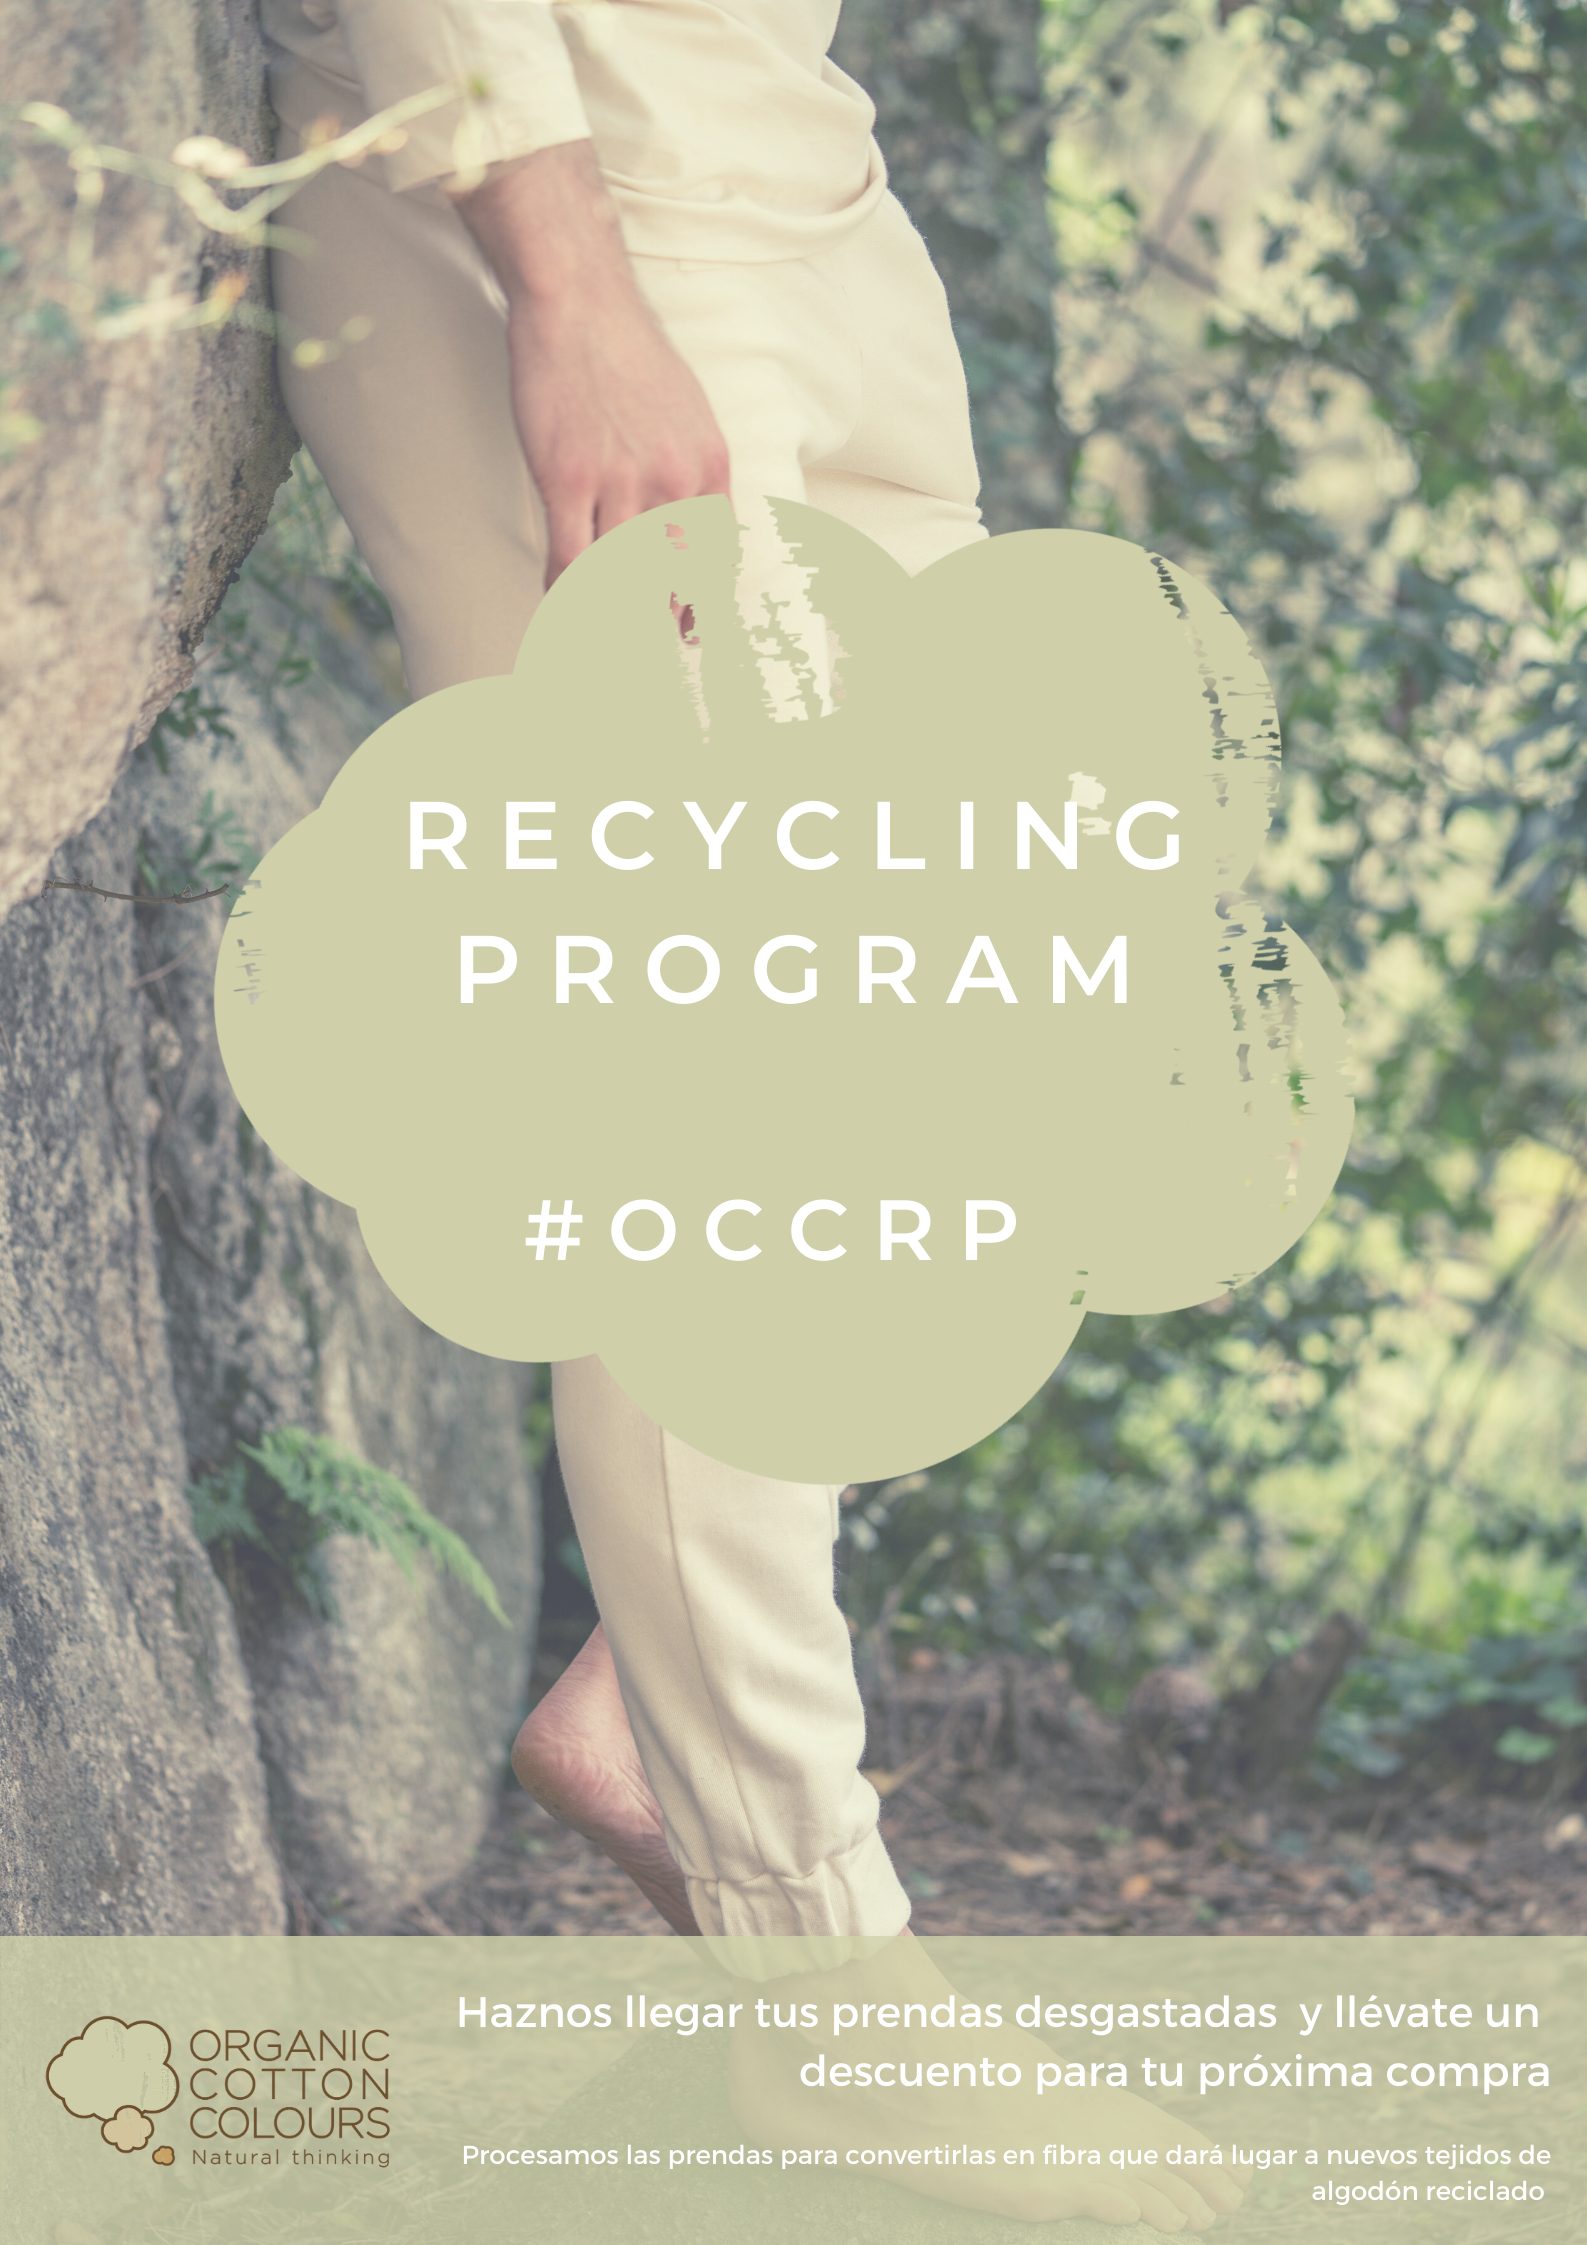 OCC Recycling Program   #OCCRP